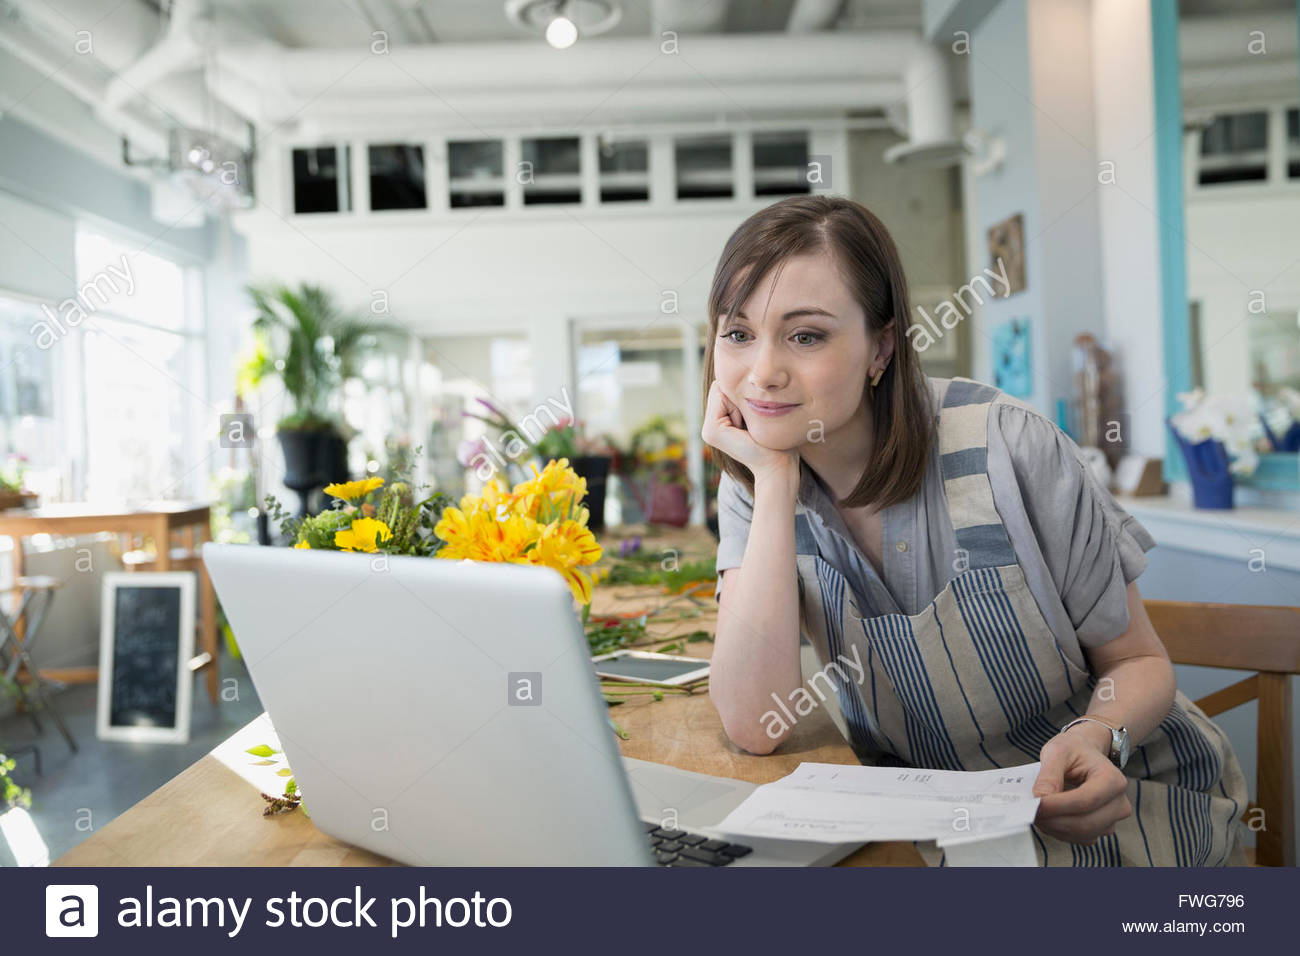 Florists using laptop in flower shop - Stock Image